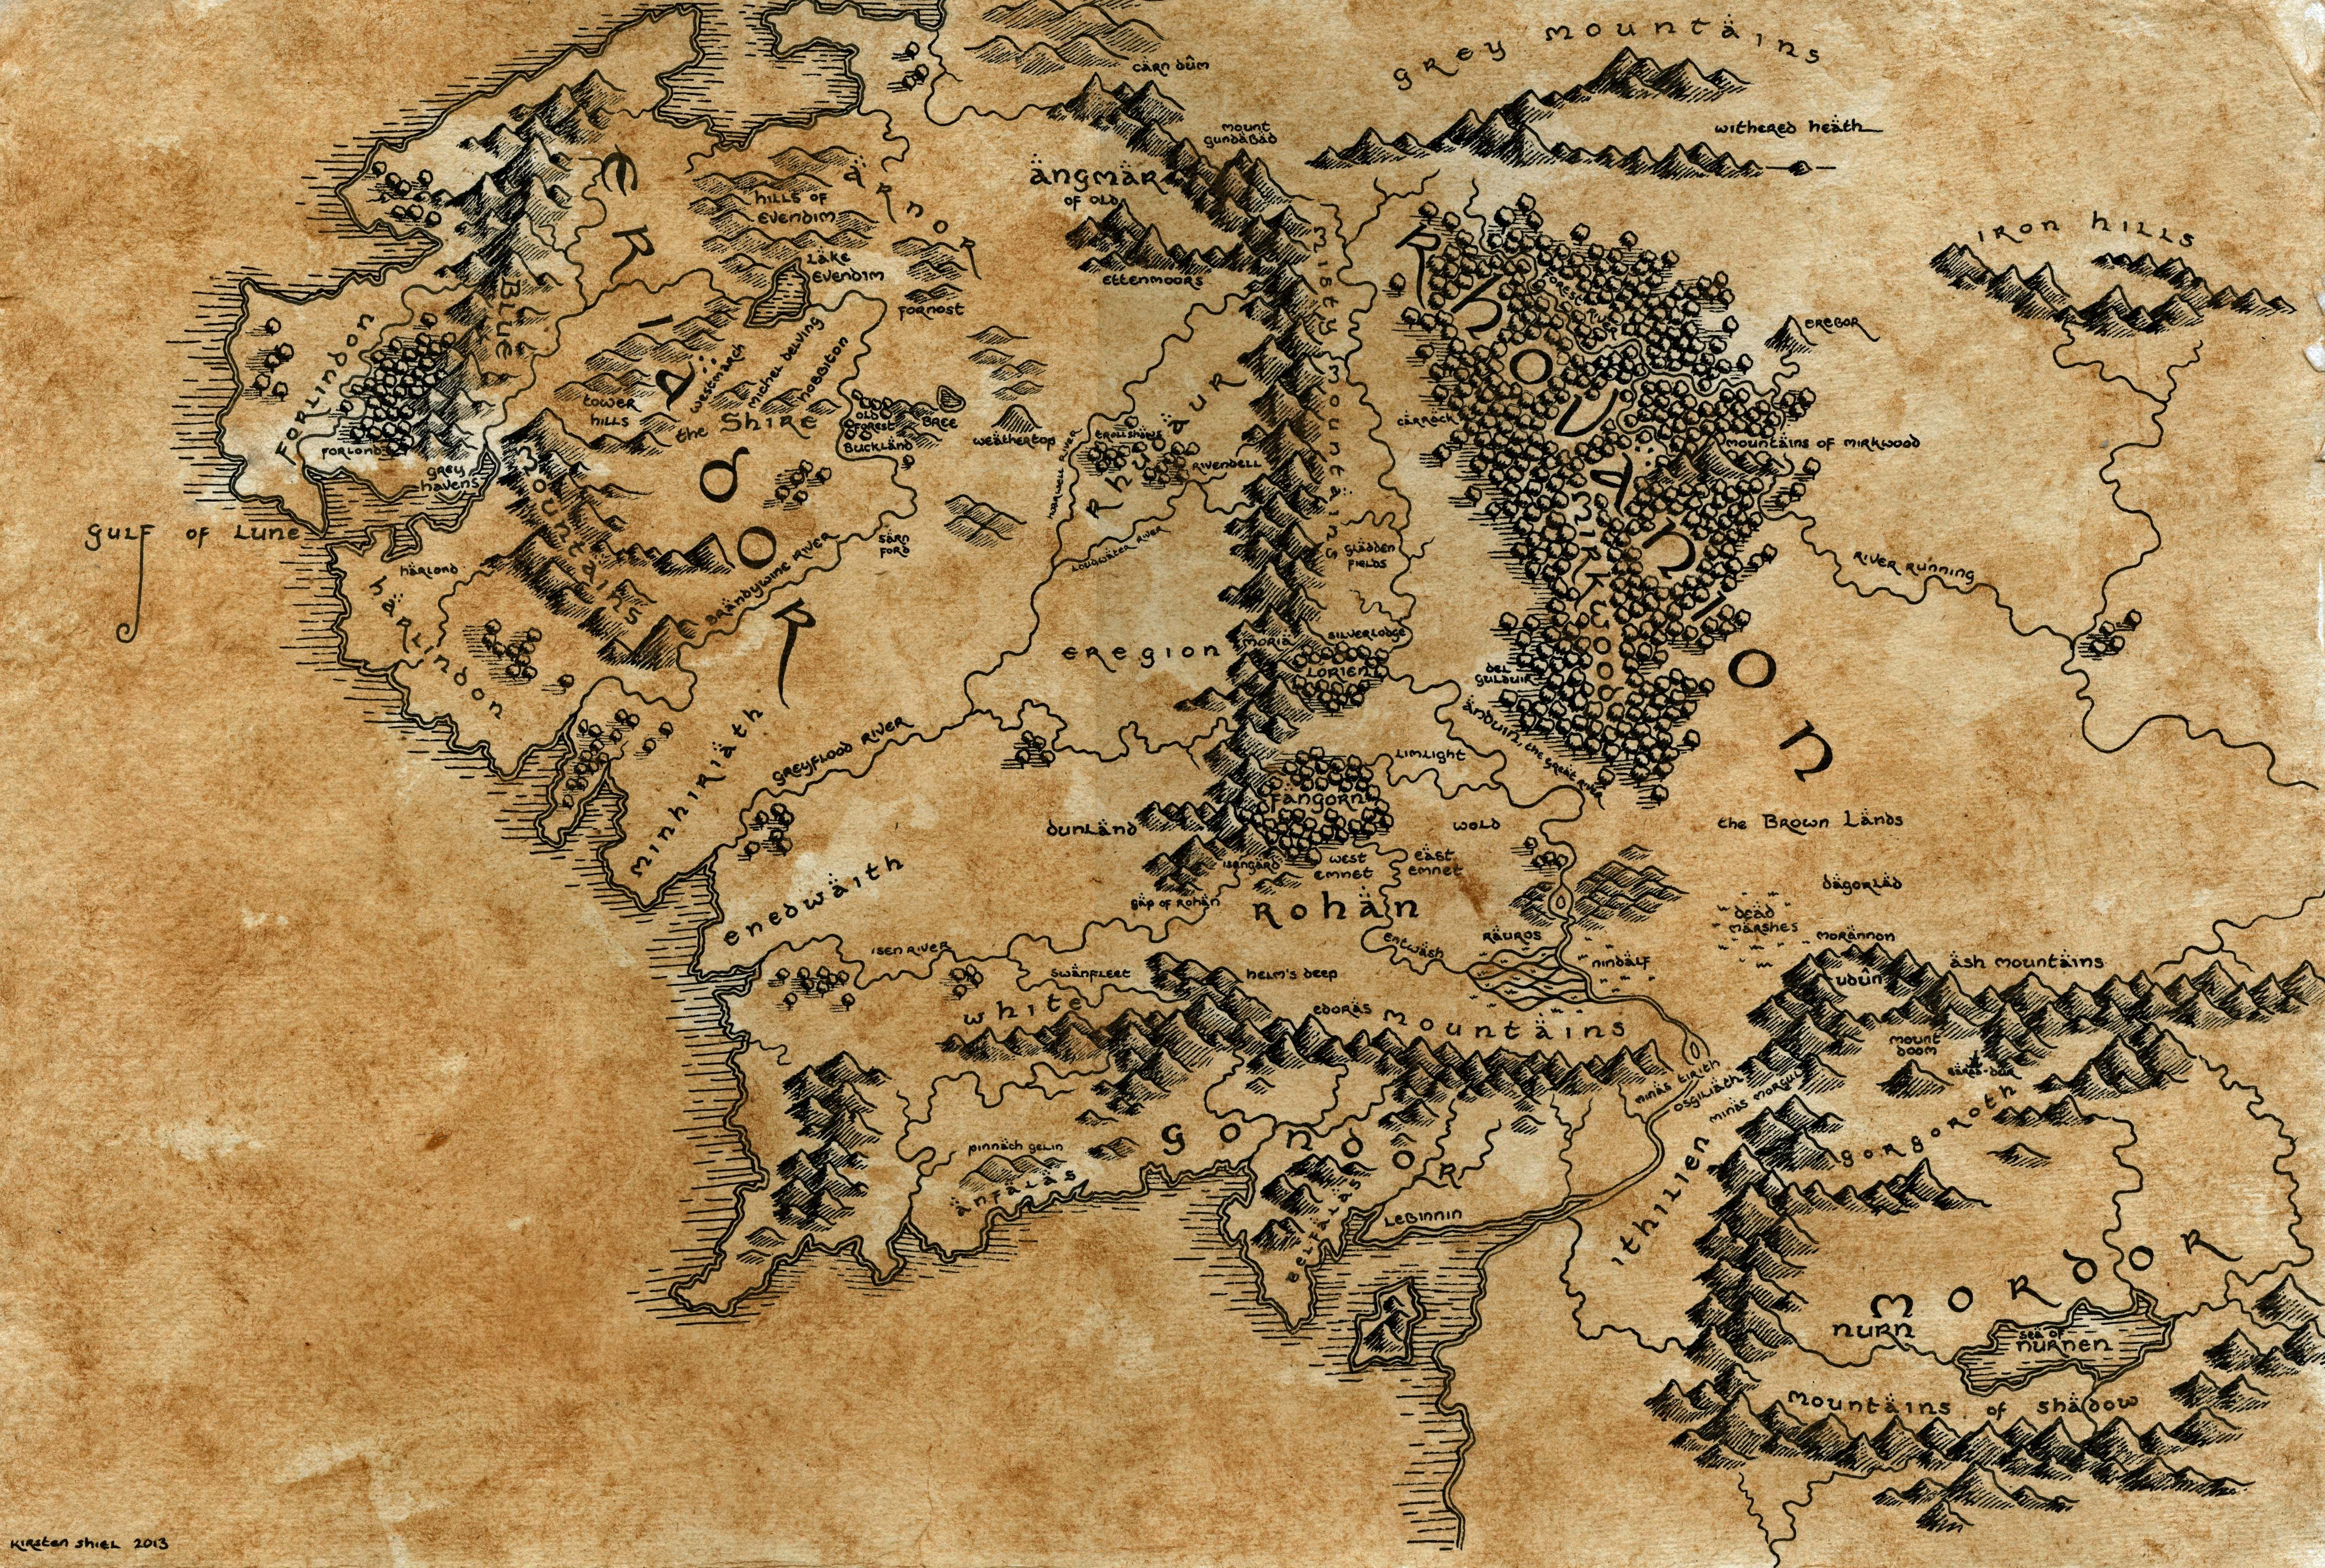 lord of the rings hand drawn middle earth map a · kirsten's cartography ·online store. lord of the rings hand drawn middle earth map a · kirsten's